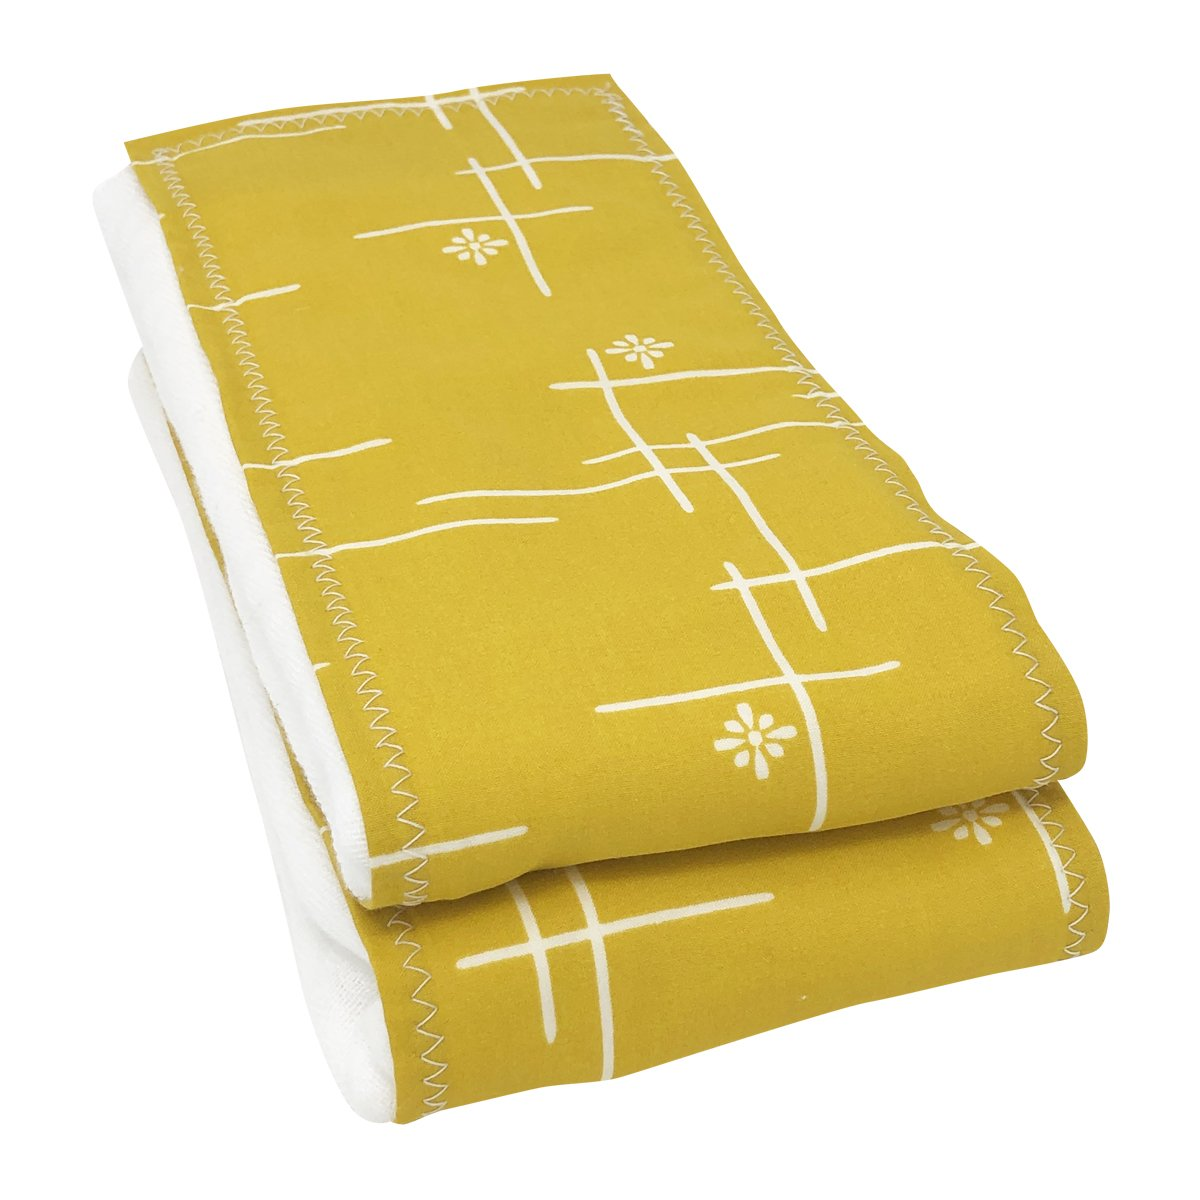 Marigold Starburst Organic Cotton Burp Cloths